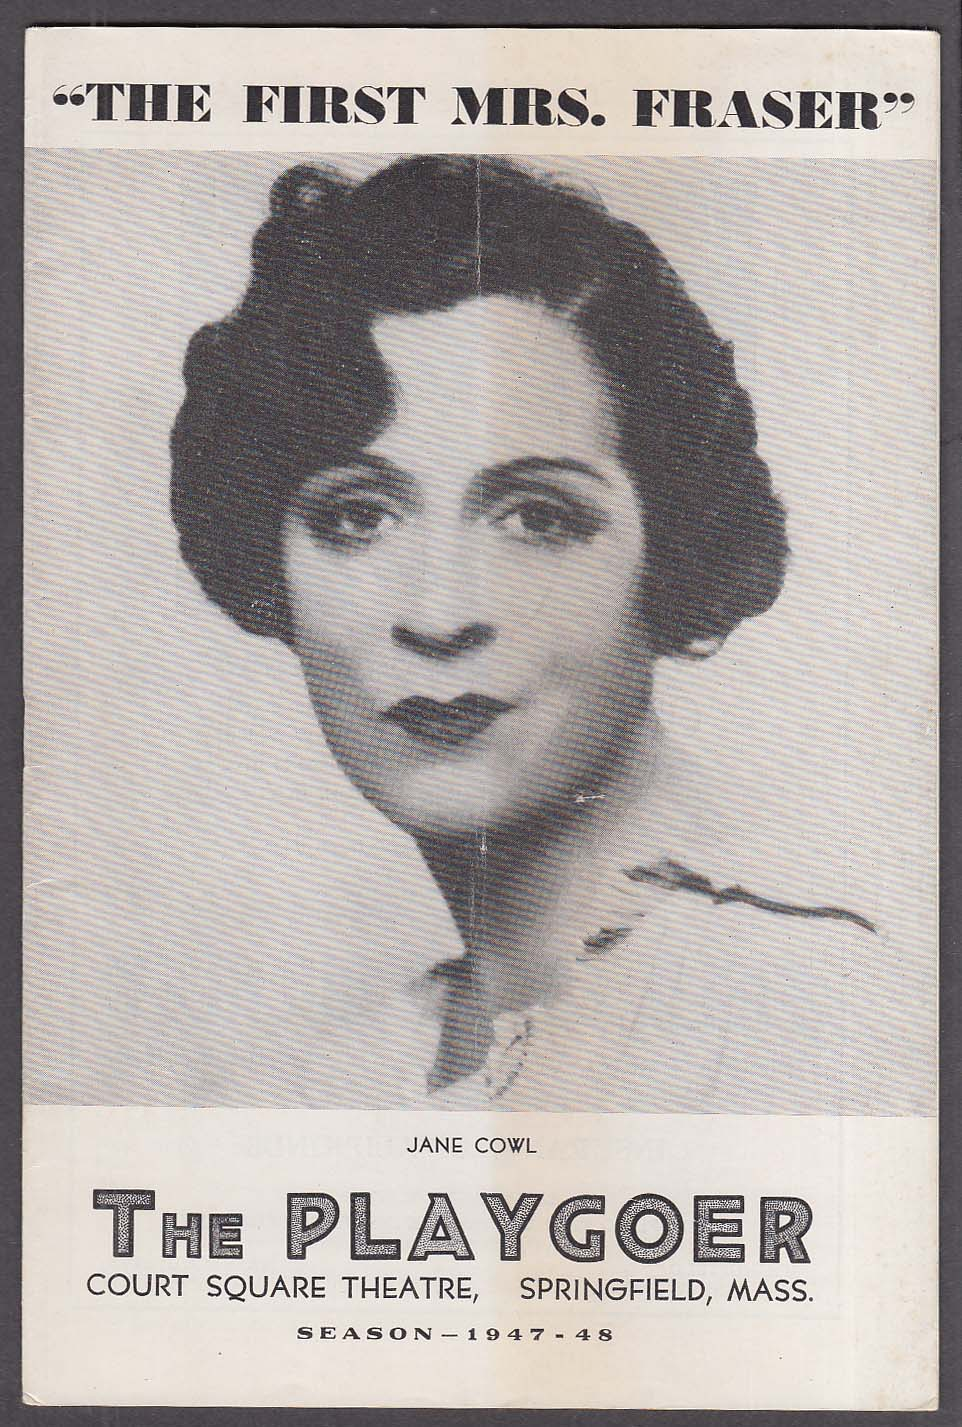 Image for Jane Cowl 1st Mrs Fraser Springfield MA Playgoer 1948